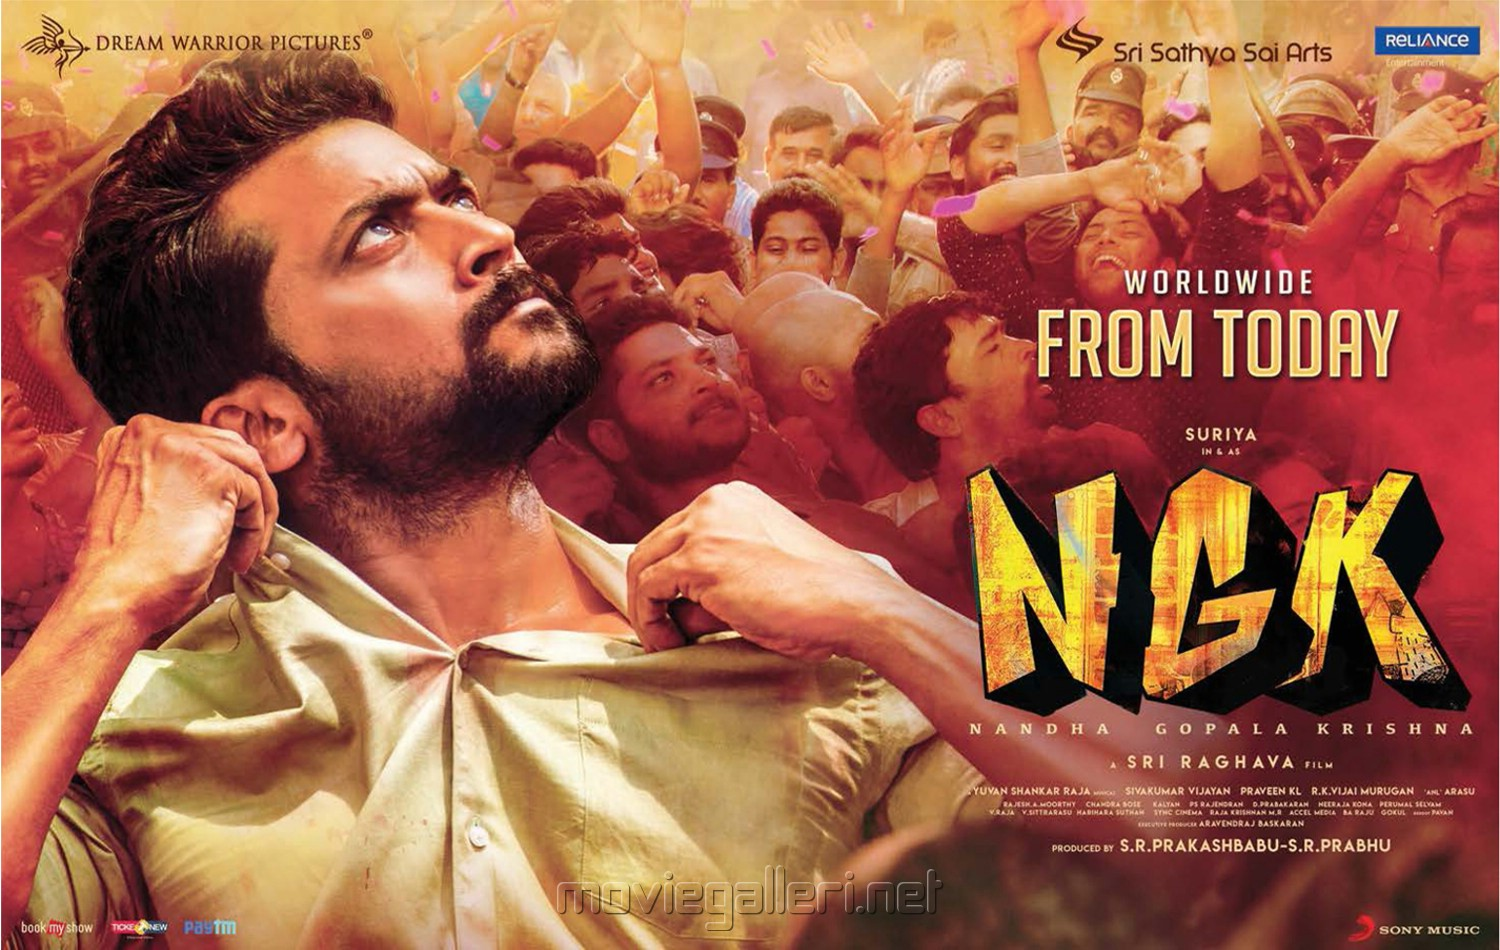 Suriya NGK Movie Release Today Posters